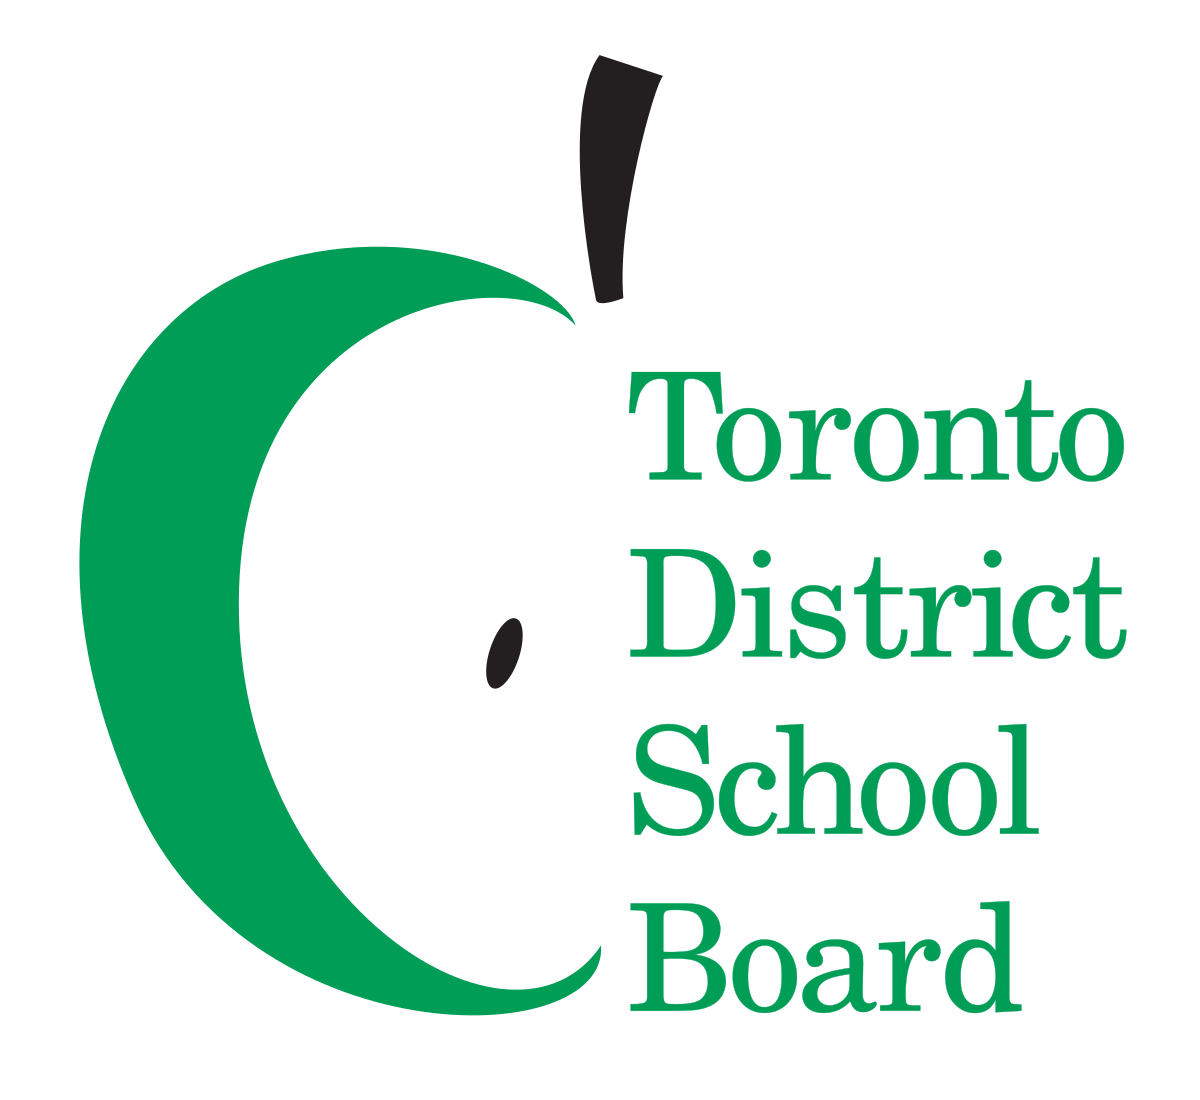 School sign clipart banner black and white Toronto District School Board - Wikipedia banner black and white